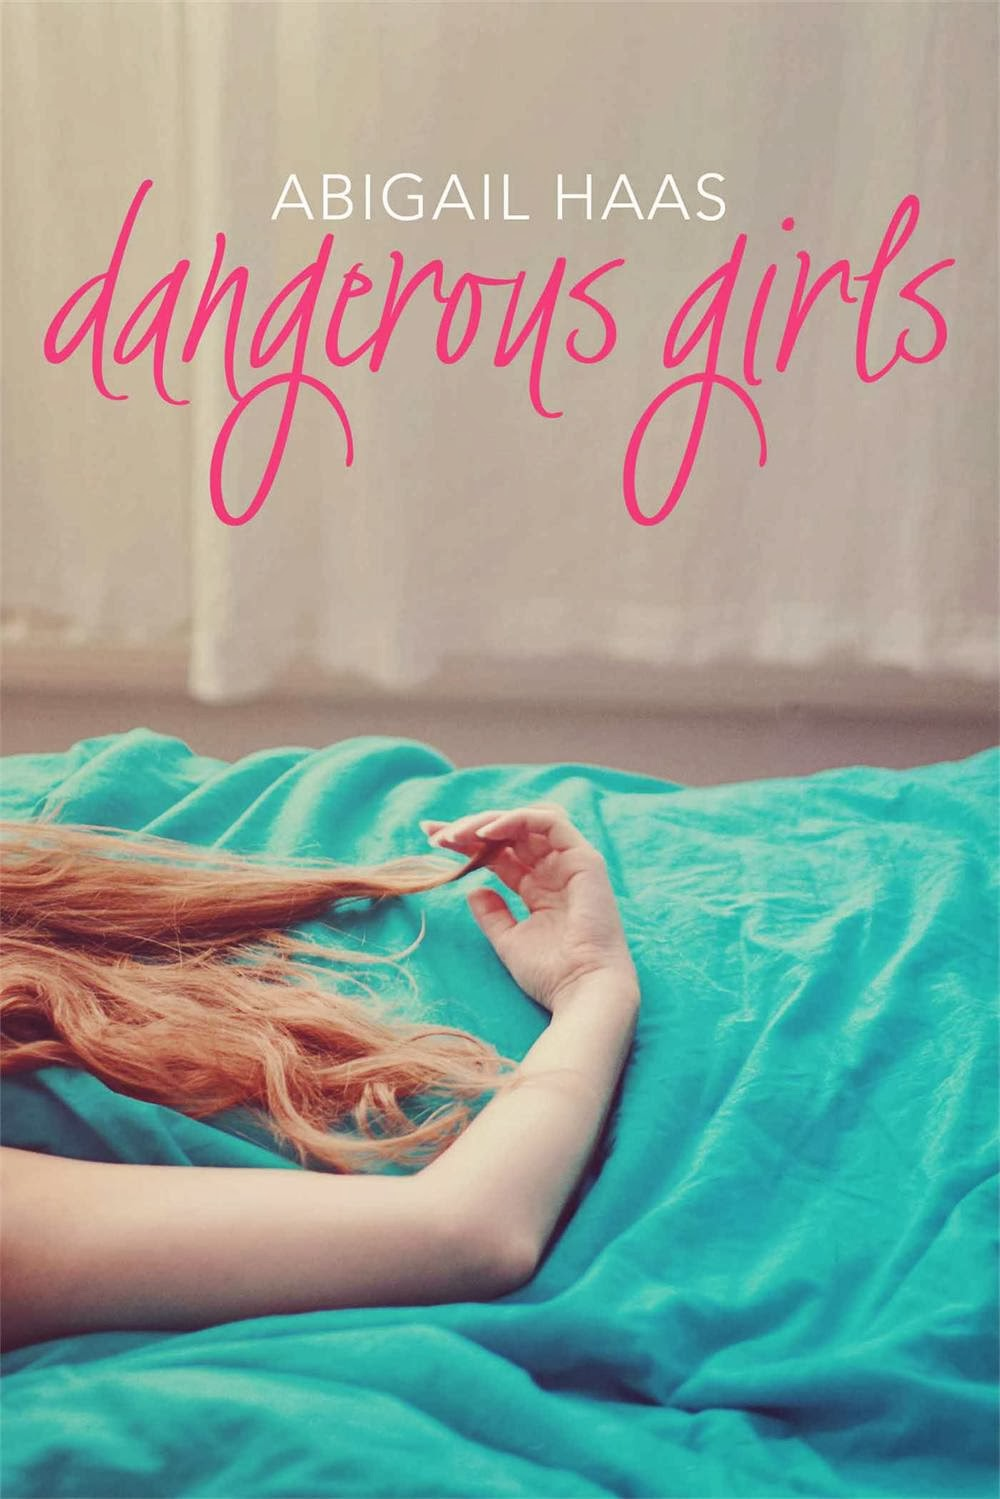 Dangerous Girls by Abigail Haas Review | Amazon | Goodreads